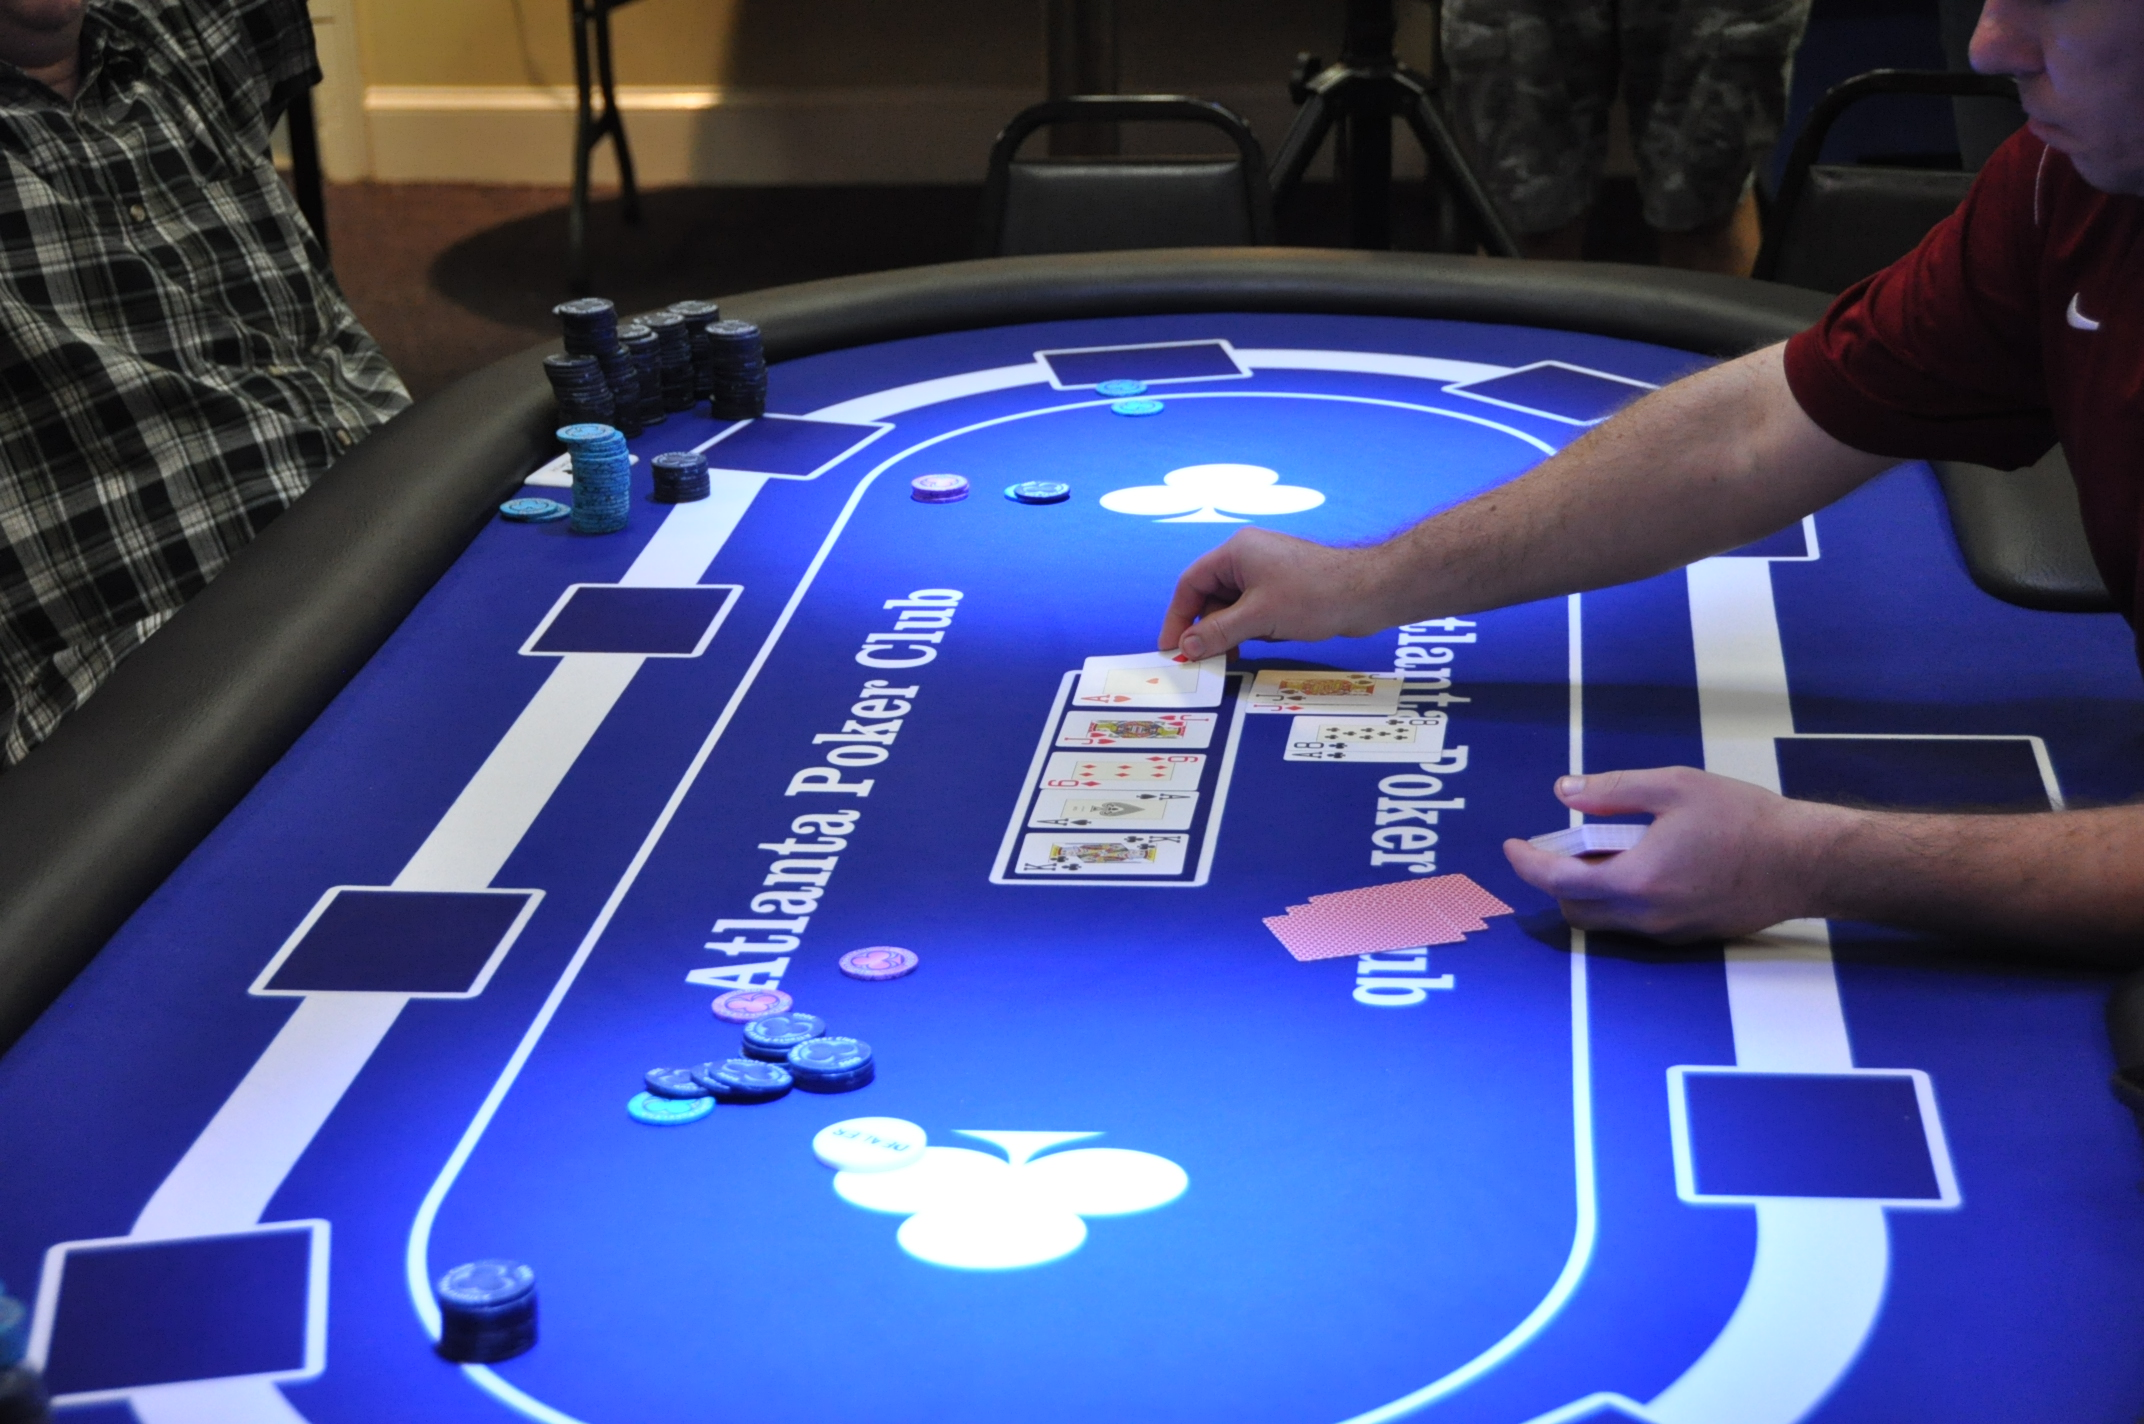 Play on the APC TV Table at the Main Event